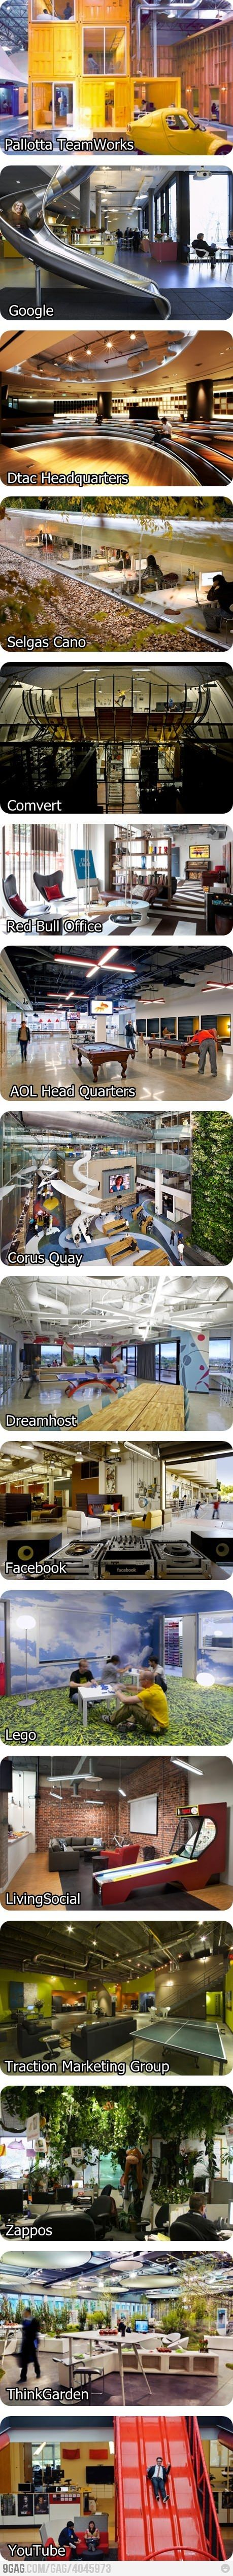 Some awesome offices...Offices Buildings, Work Area, Favorite Places, Offices Design, Offices Spaces, Work Places, Offices Workspaces, Awesome Offices, Offices Interiors